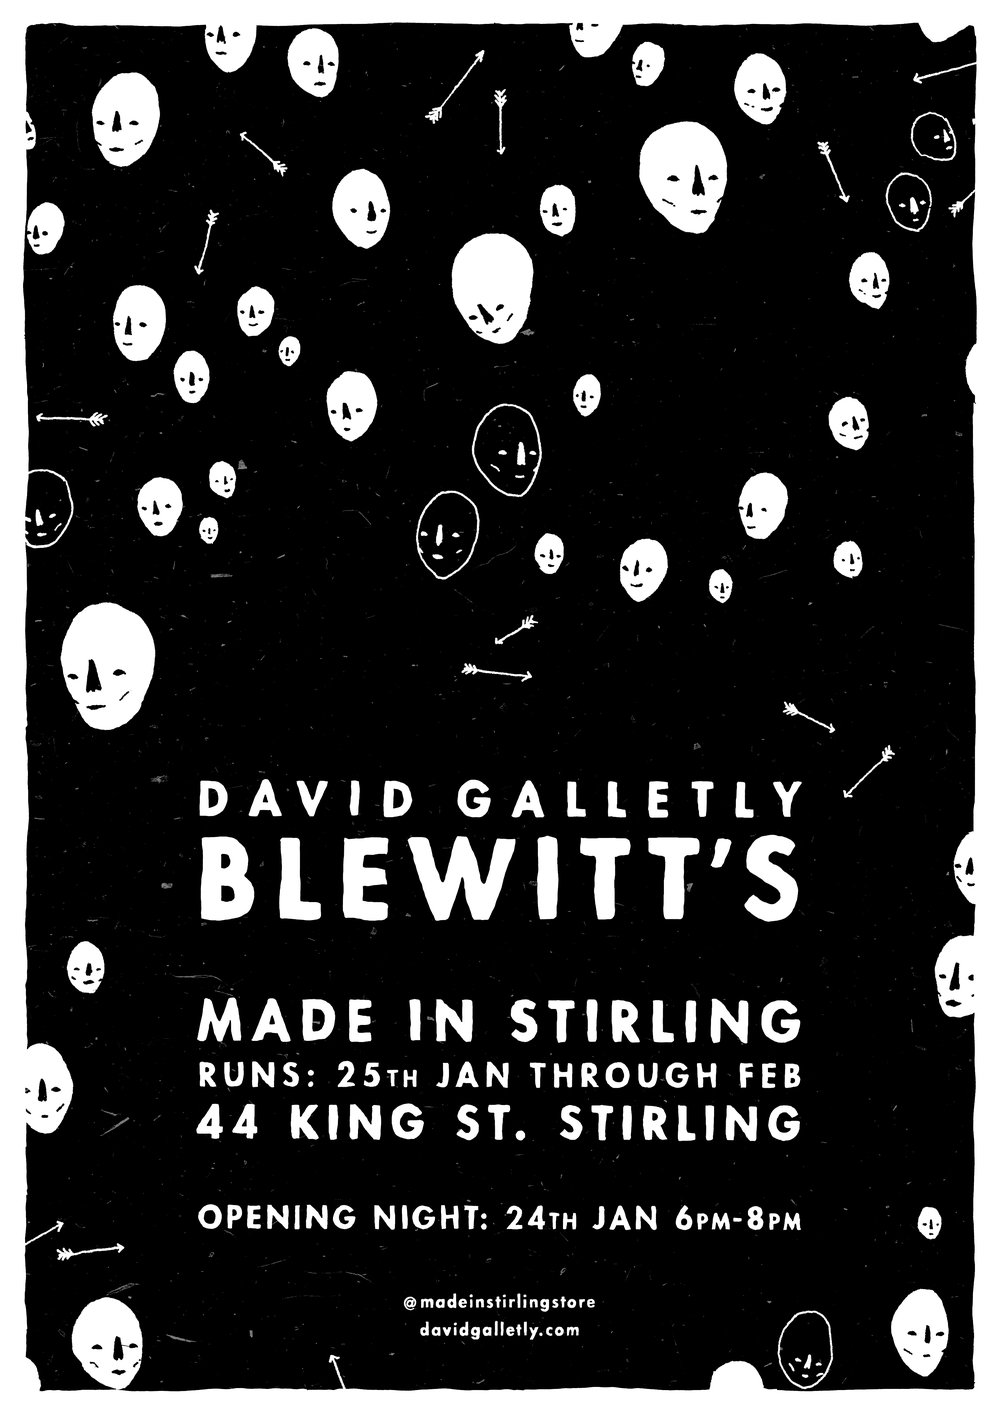 blewitt's-flyer-portrait-large.jpg